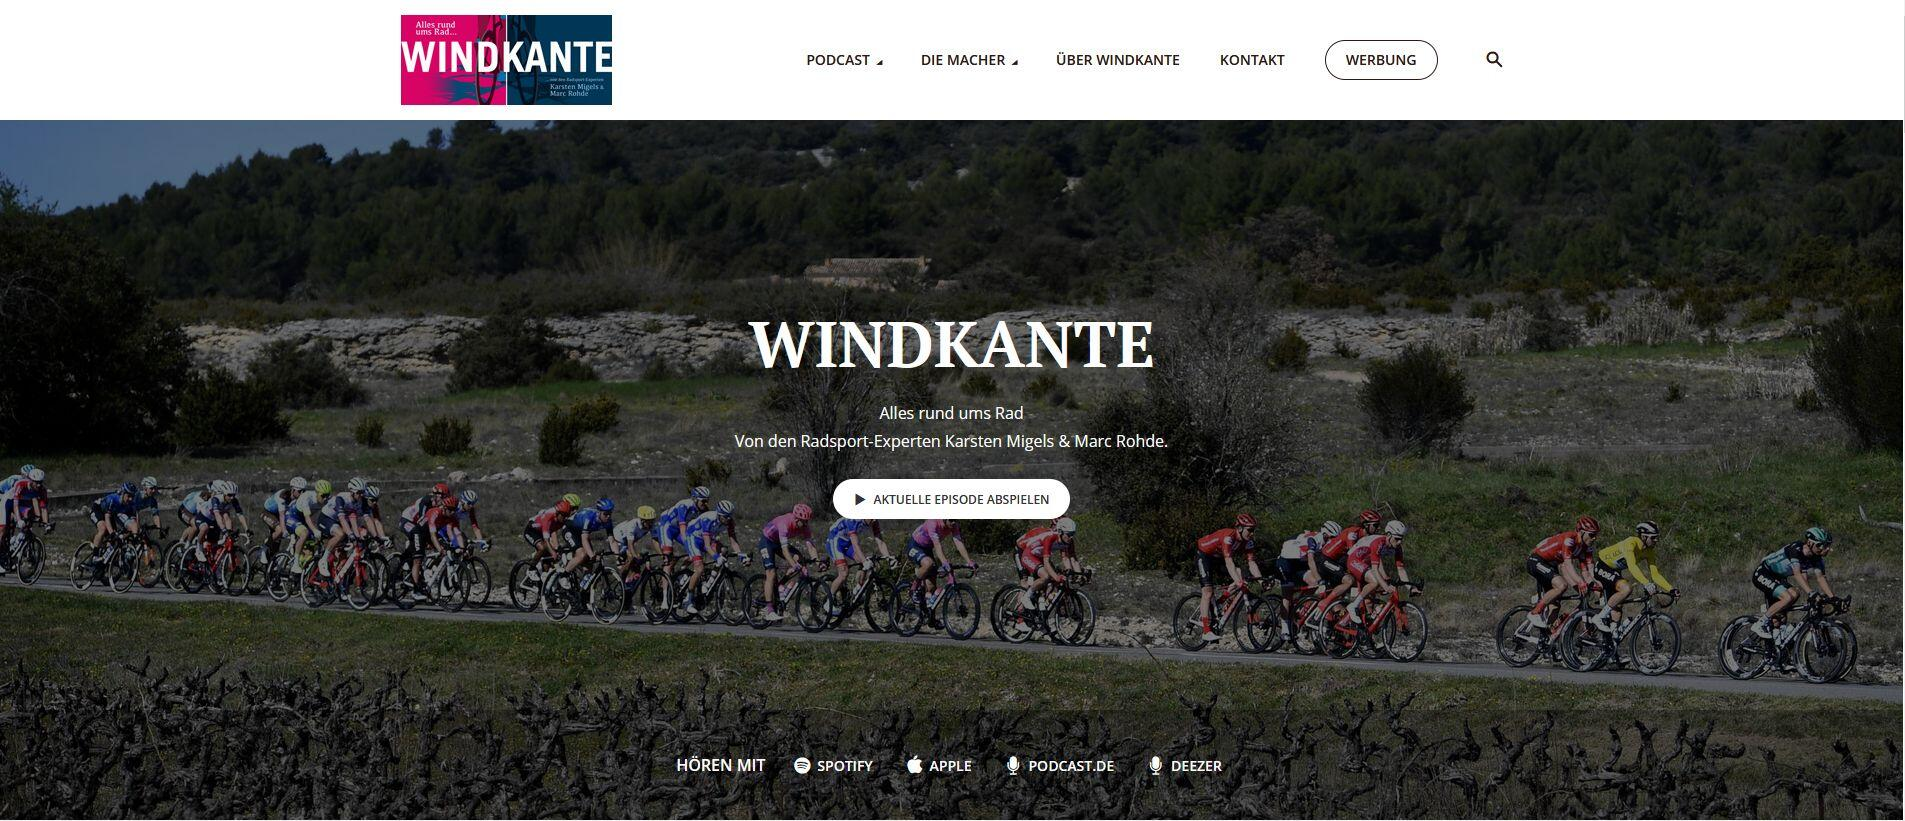 Referenz Windkante Podcast